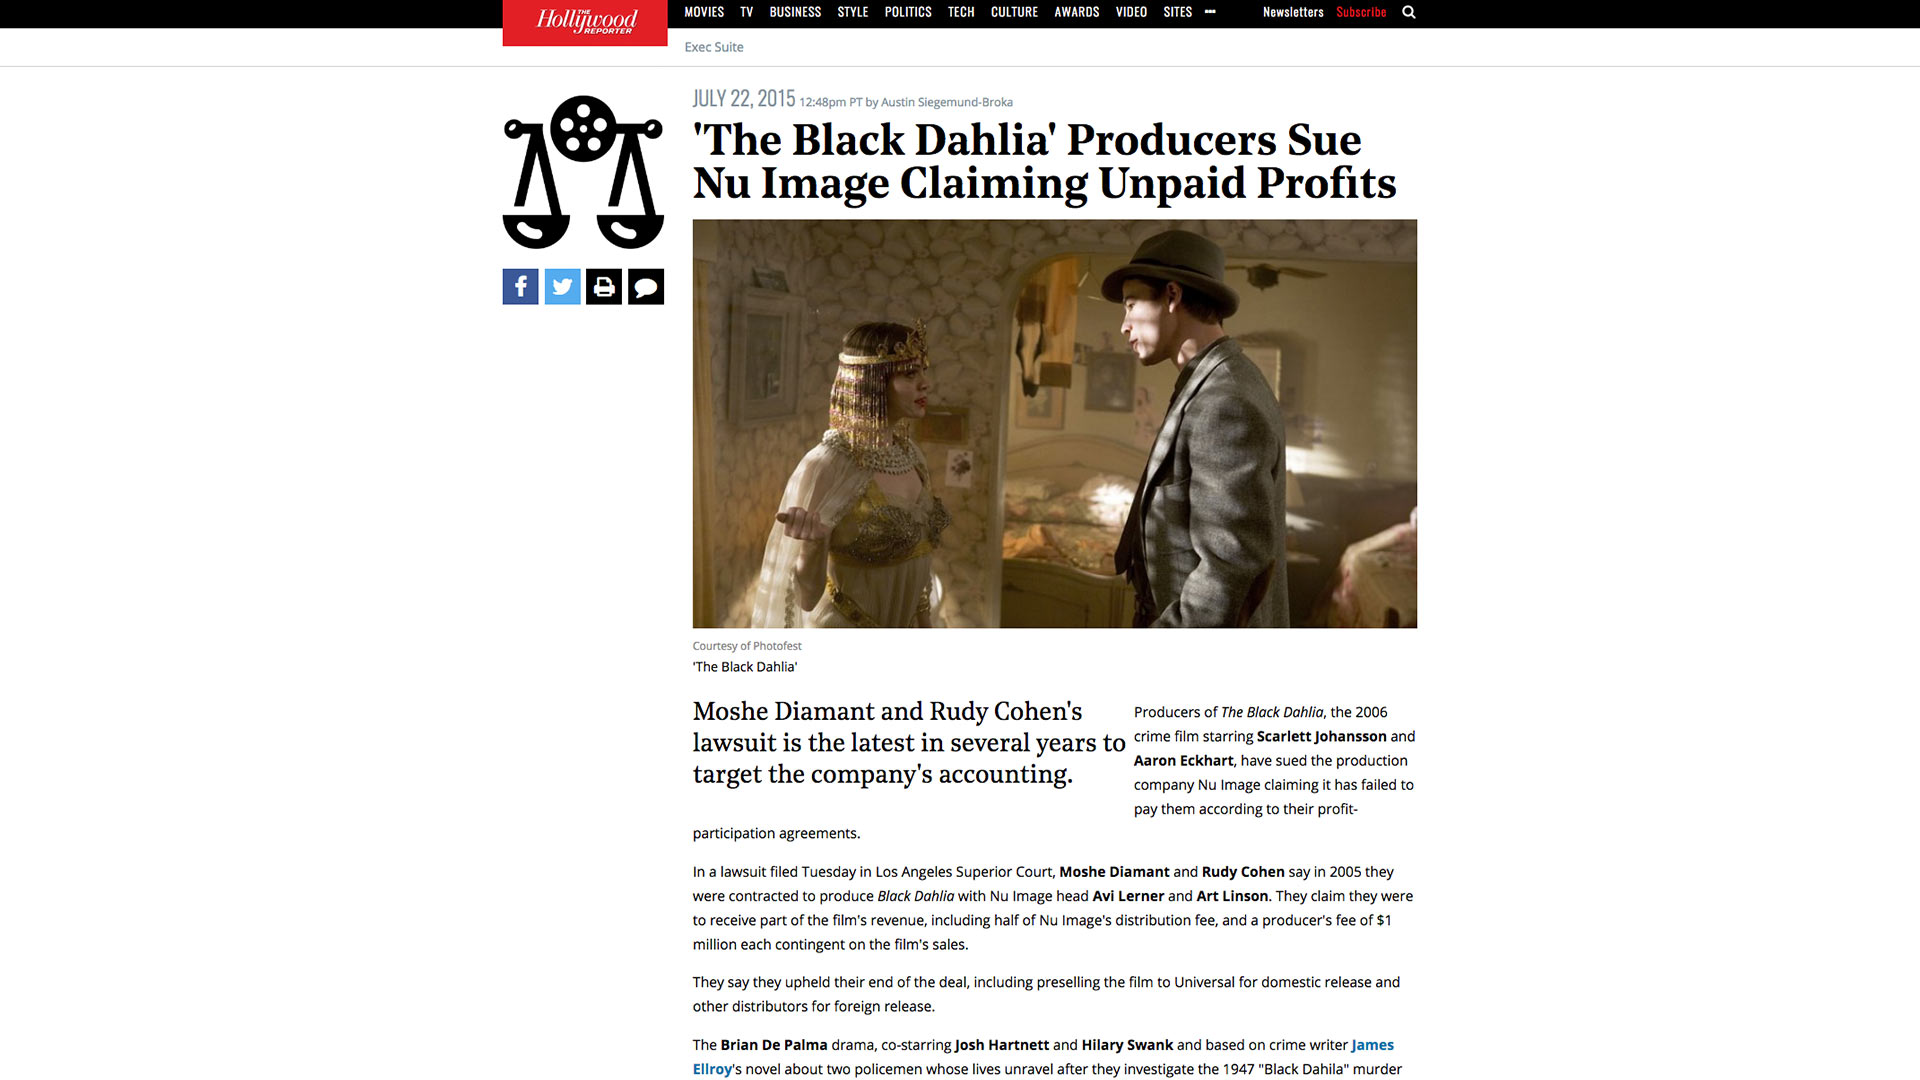 Fairness Rocks News 'The Black Dahlia' Producers Sue Nu Image Claiming Unpaid Profits